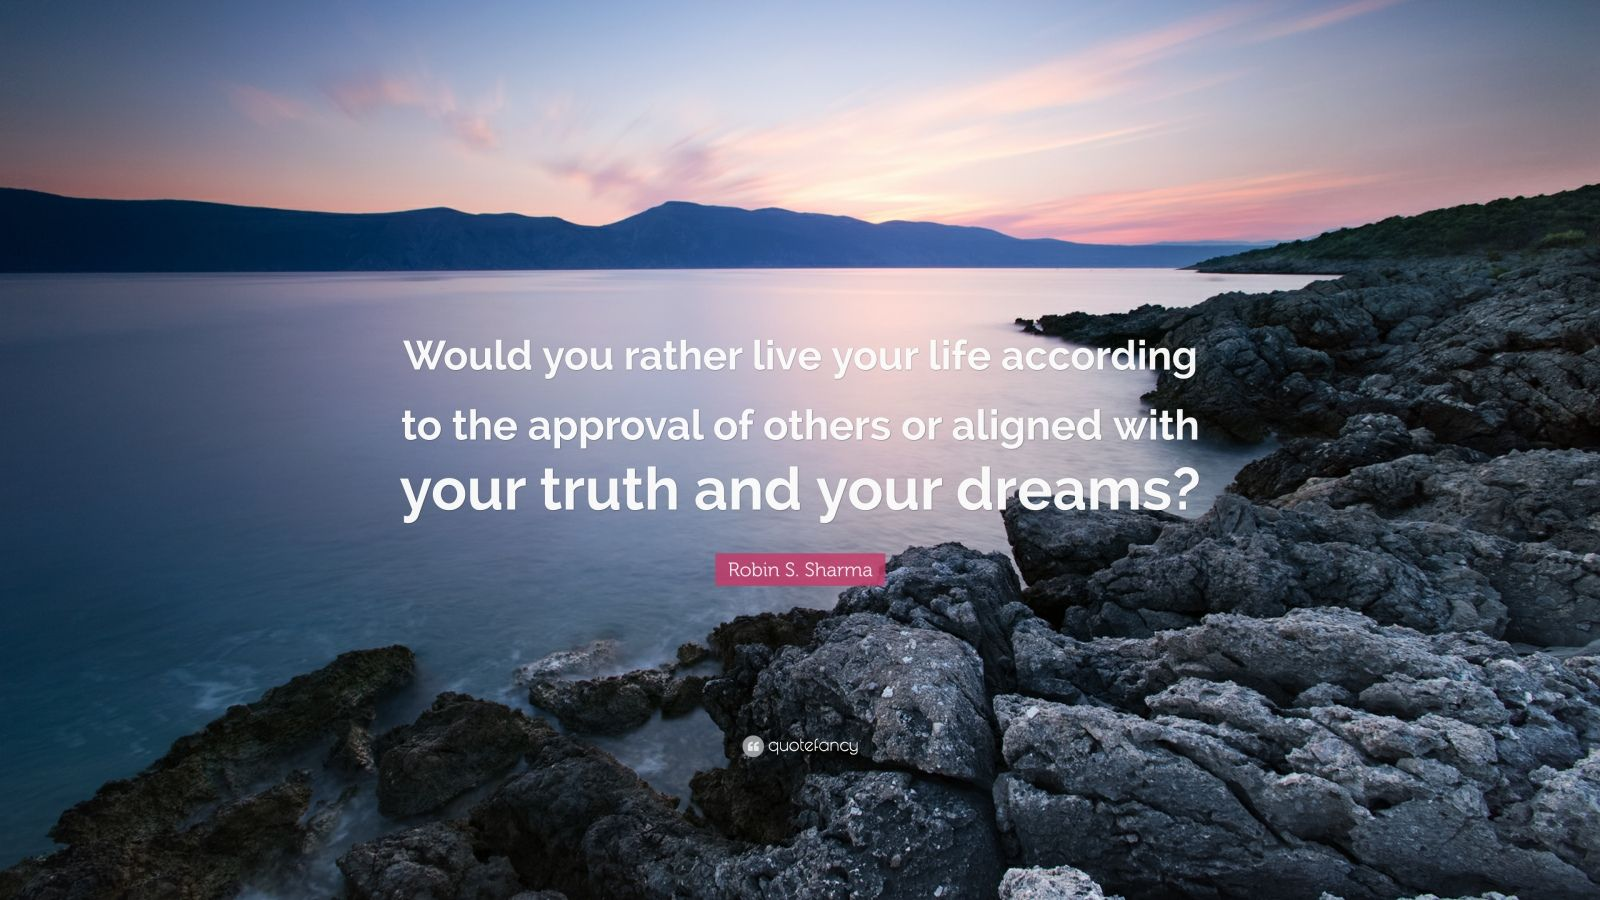 """Robin S. Sharma Quote: """"Would you rather live your life according to the approval of others or aligned with your truth and your dreams?"""""""